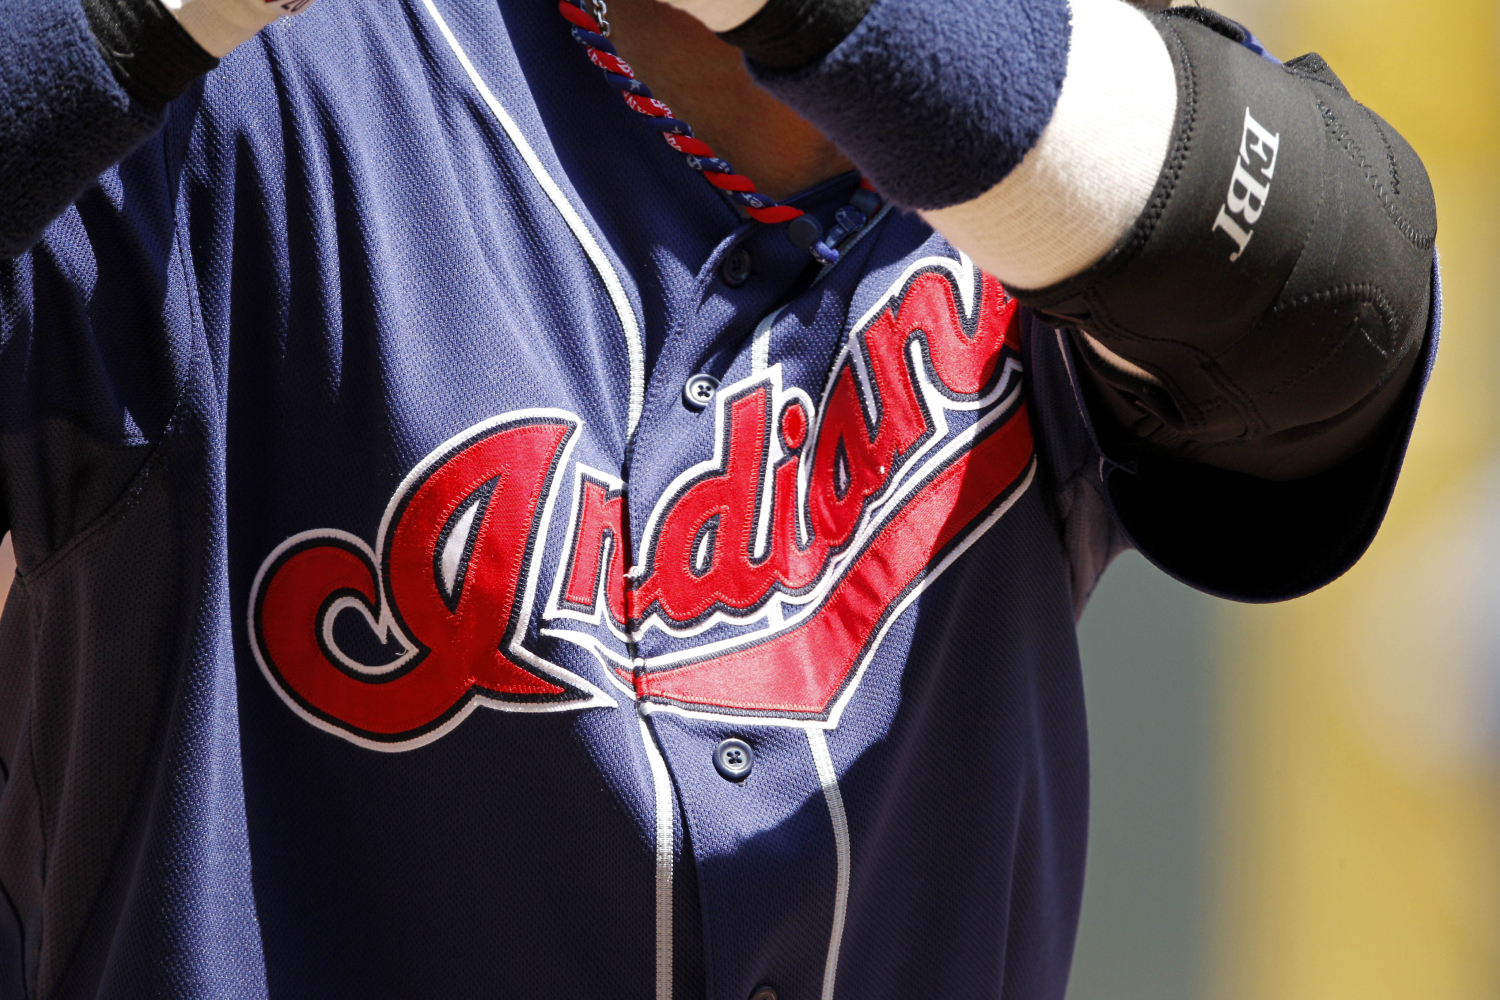 The Cleveland Indians could soon change their team name. One new name idea would honor both Black athletes and baseball history.